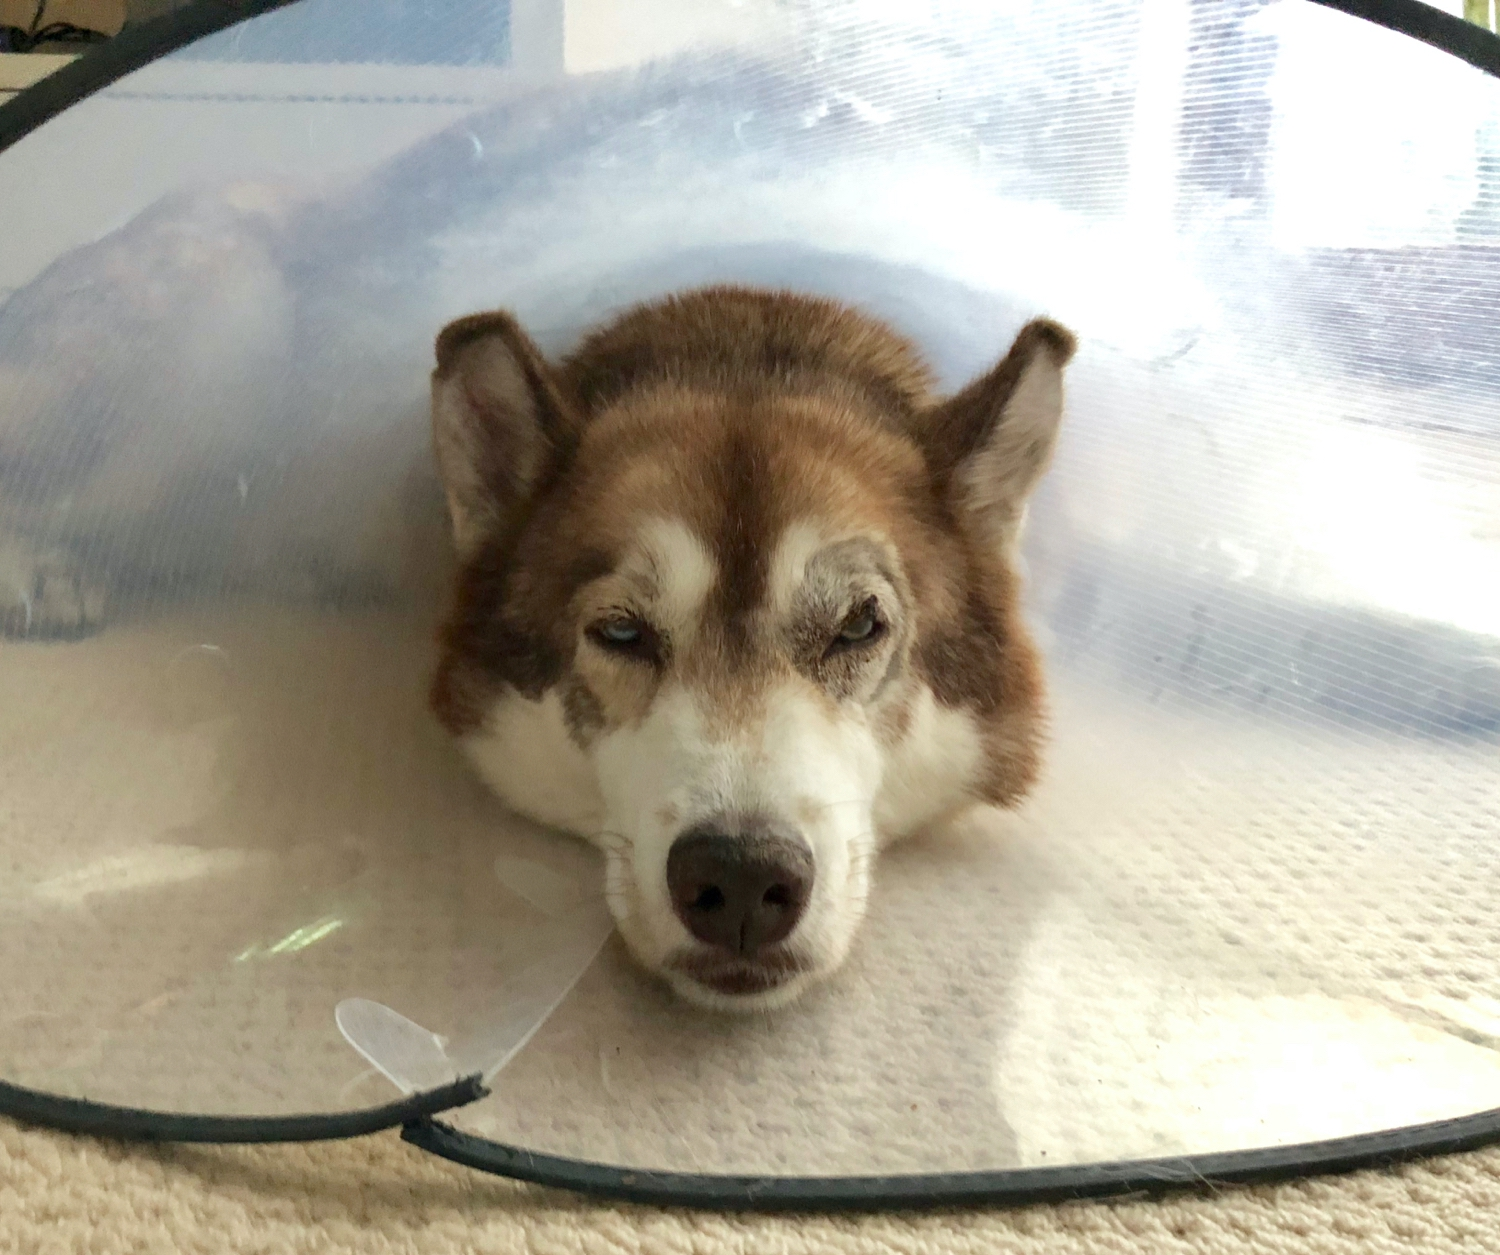 Osky looking fed up with a vet's cone around his neck. The area around his right eye is shaved with a large stitch on his right eyelid.